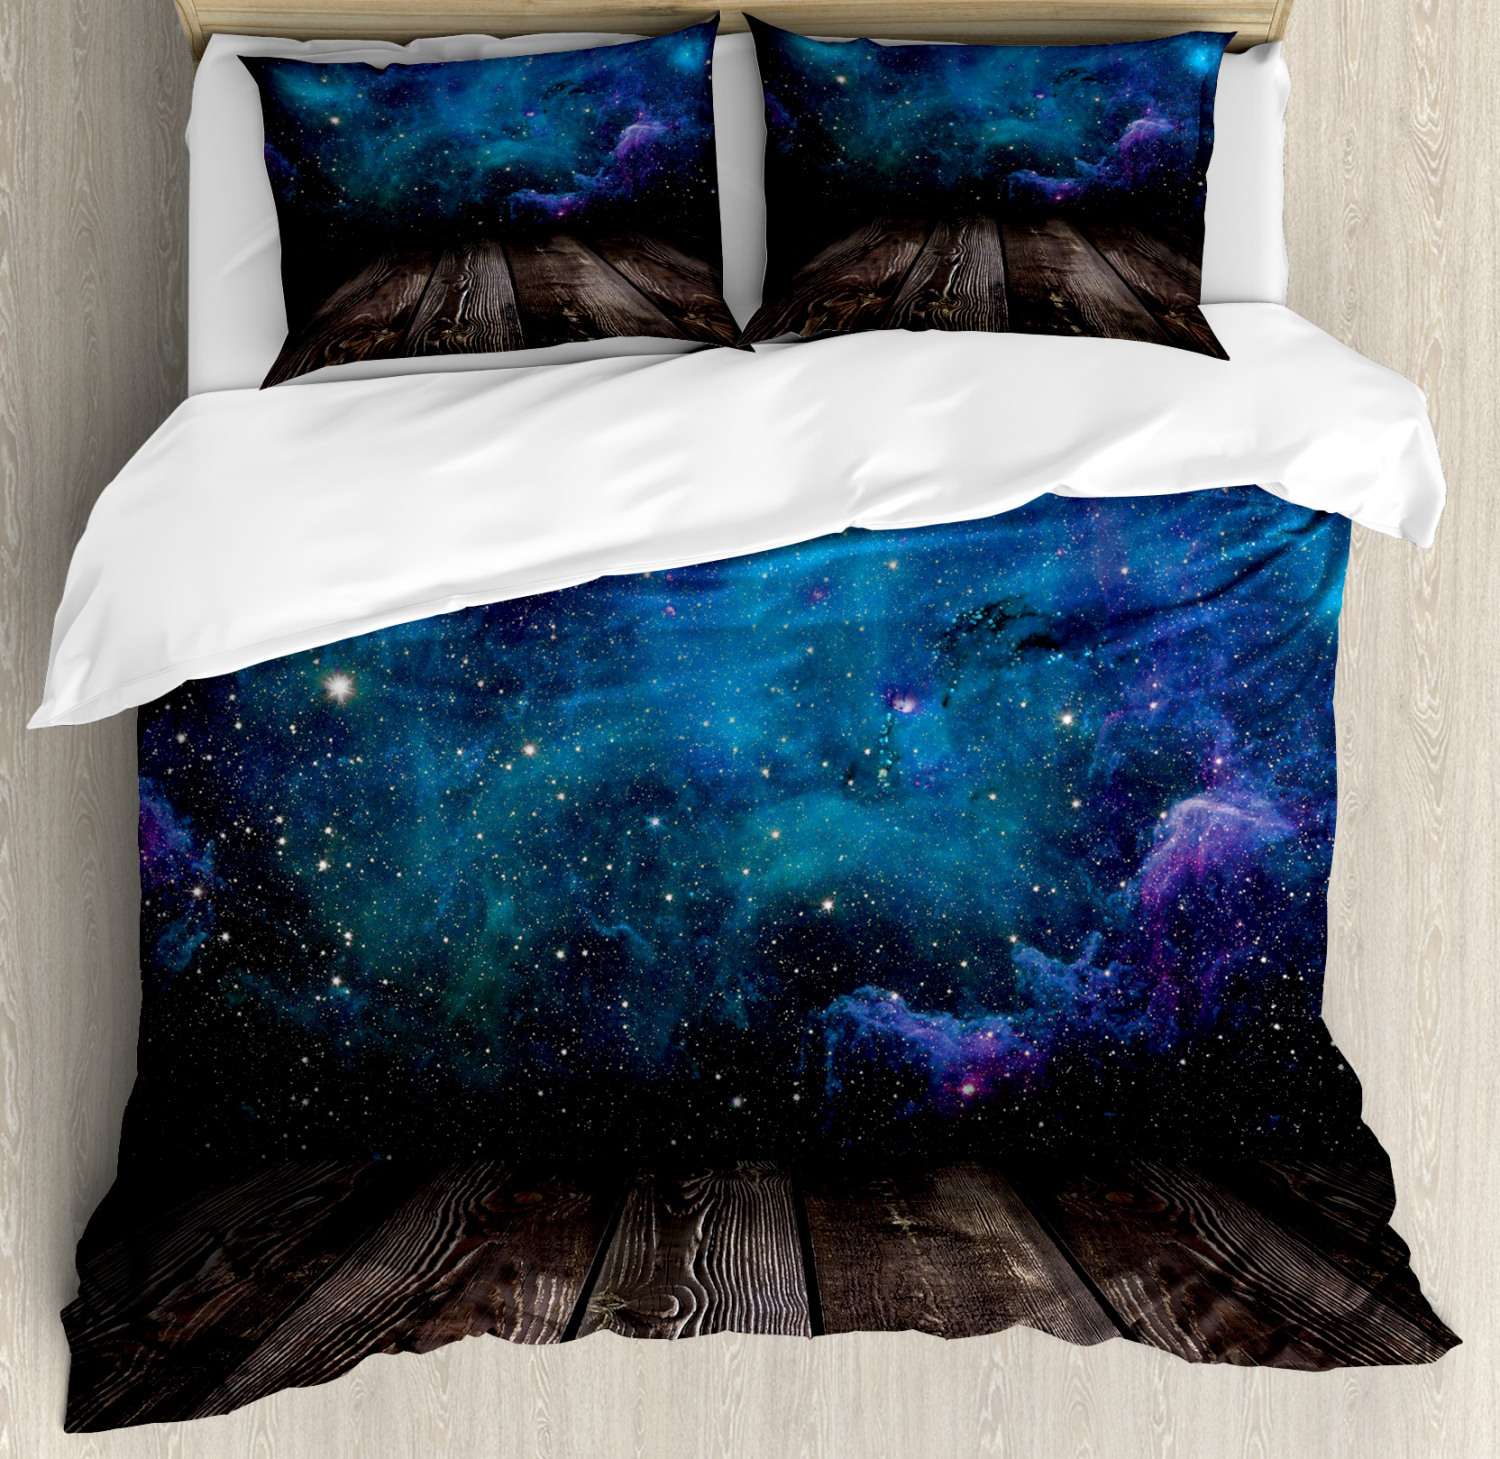 Galaxy Duvet Cover Set with Pillow Shams Space from Home View Print